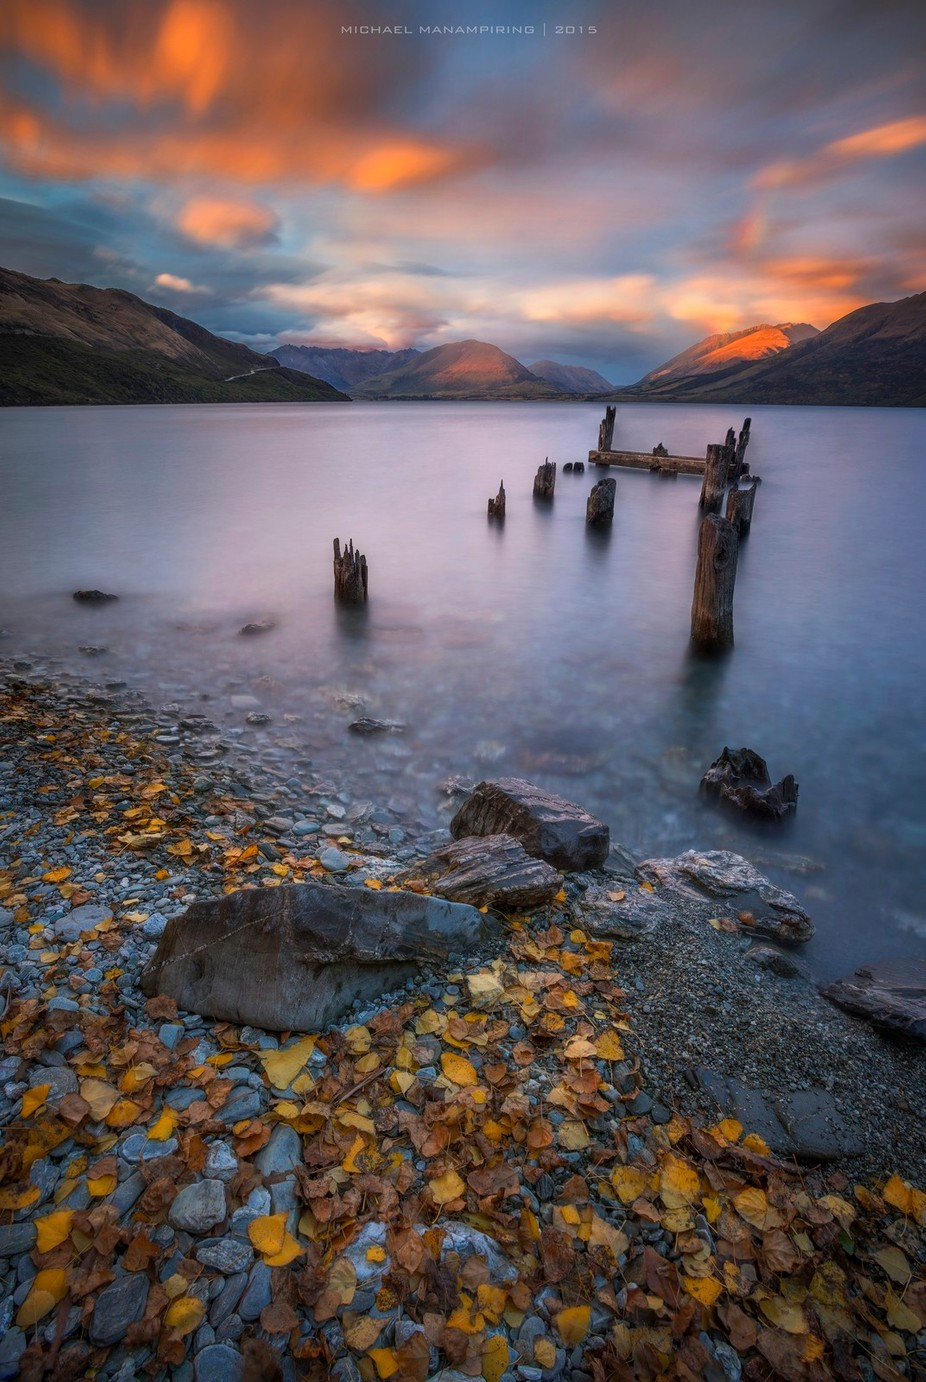 Lake-Wakatipu-Jetty-(Viewbug) by michaelmanampiring - The Beauty Of Nature Photo Contest